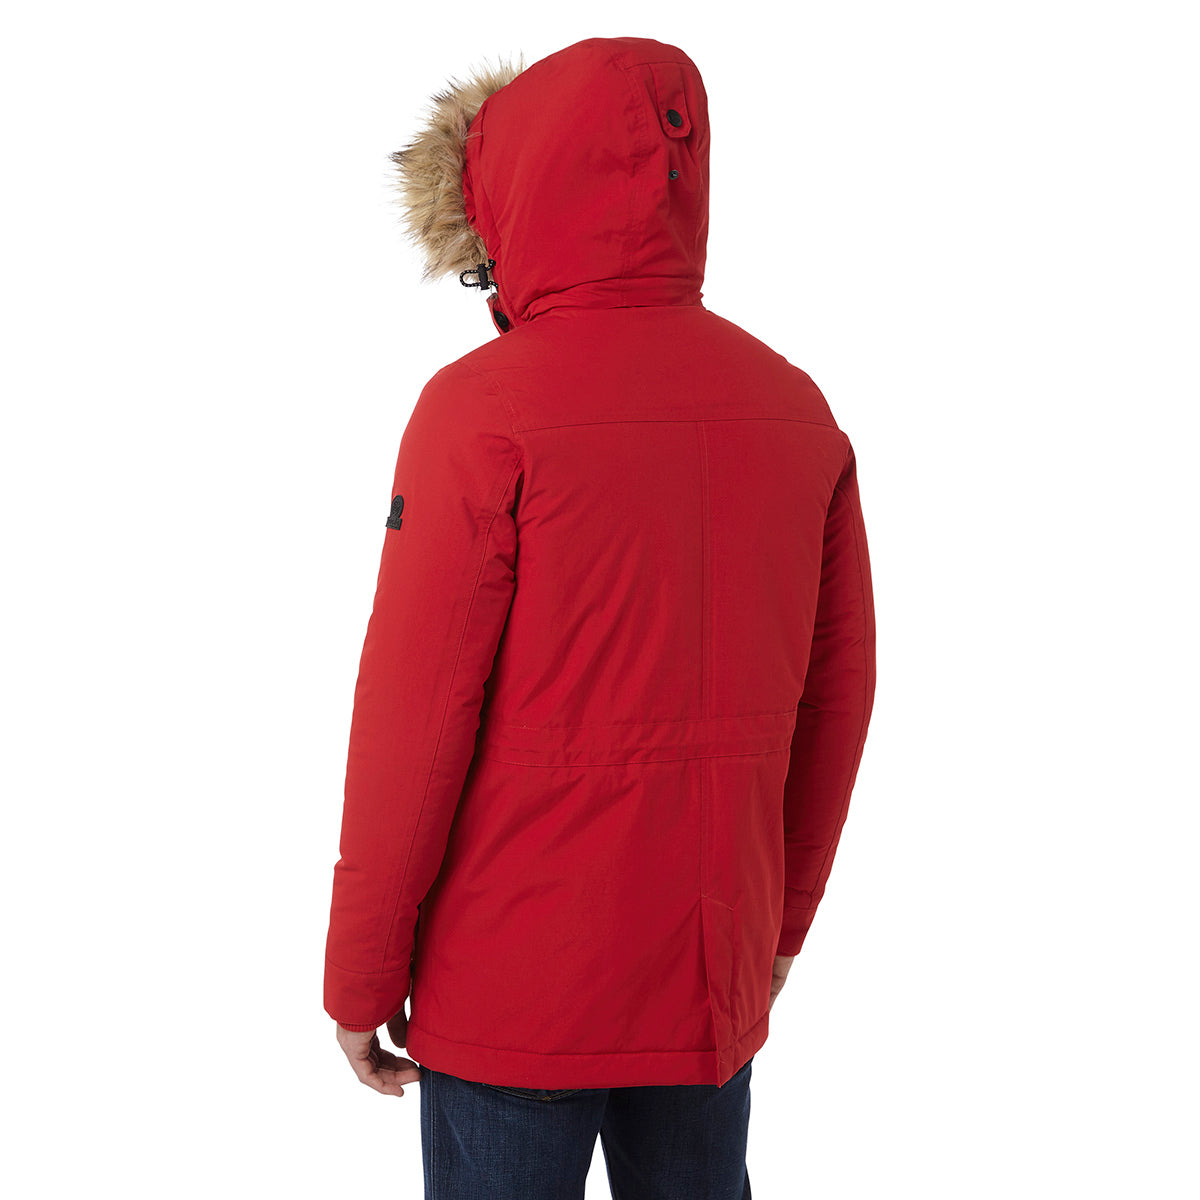 Superior Mens Milatex Jacket - Chilli Red image 4